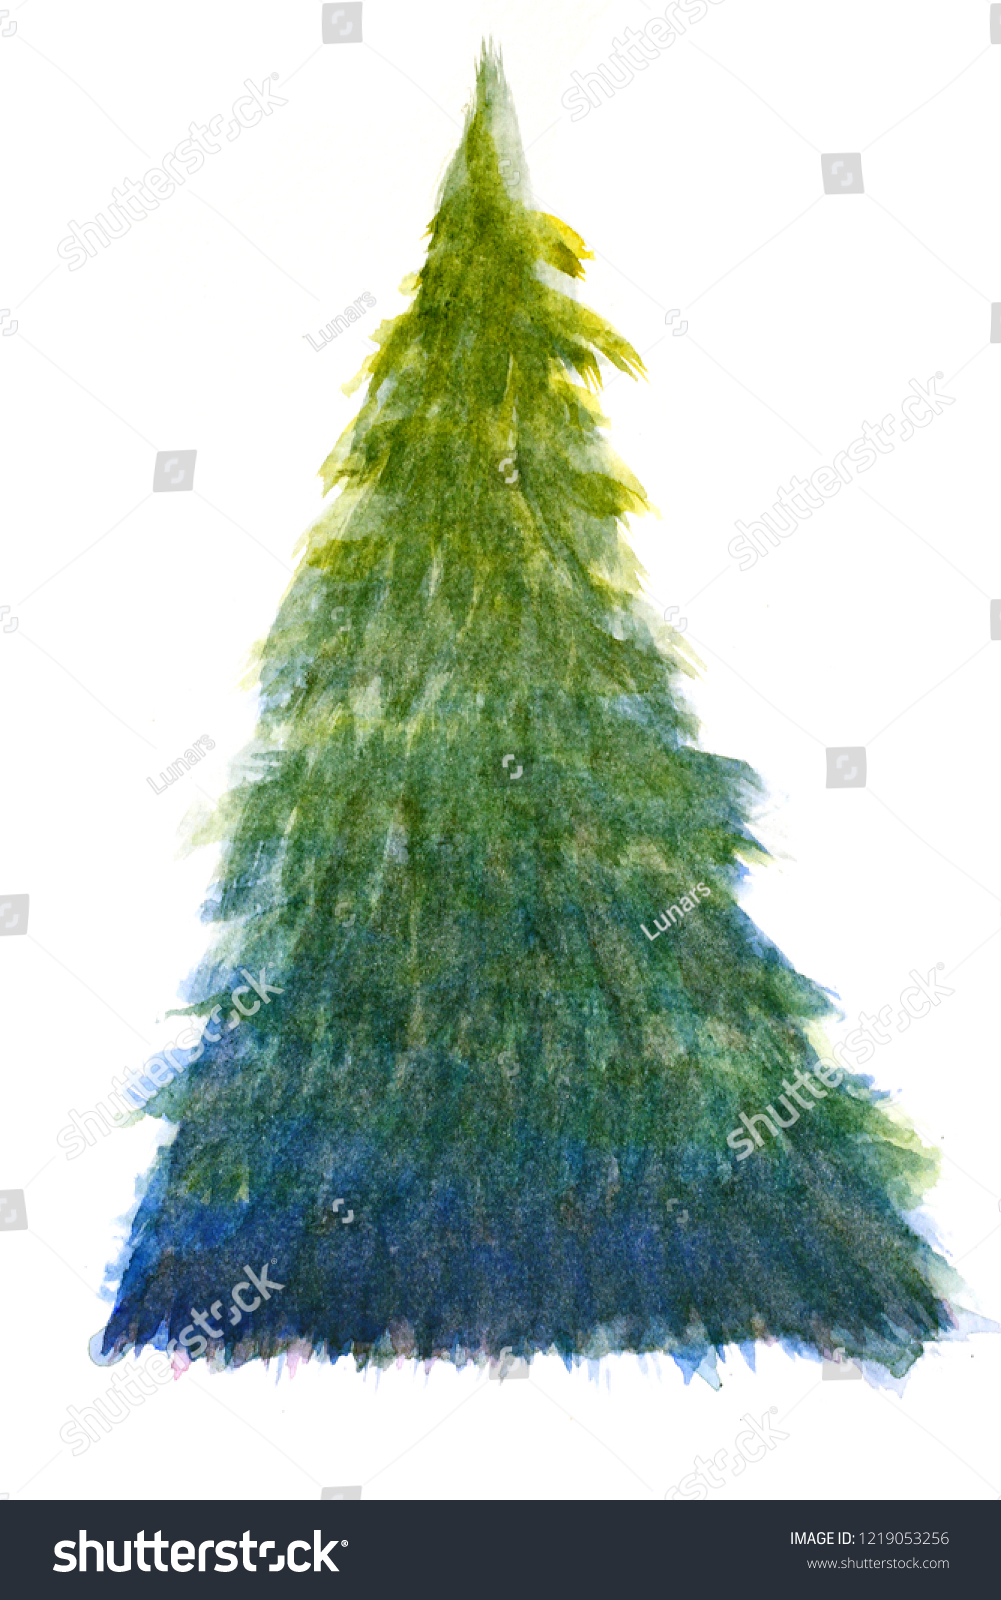 Colorful Christmas Tree Watercolor Hand Paint Stock Illustration 1219053256